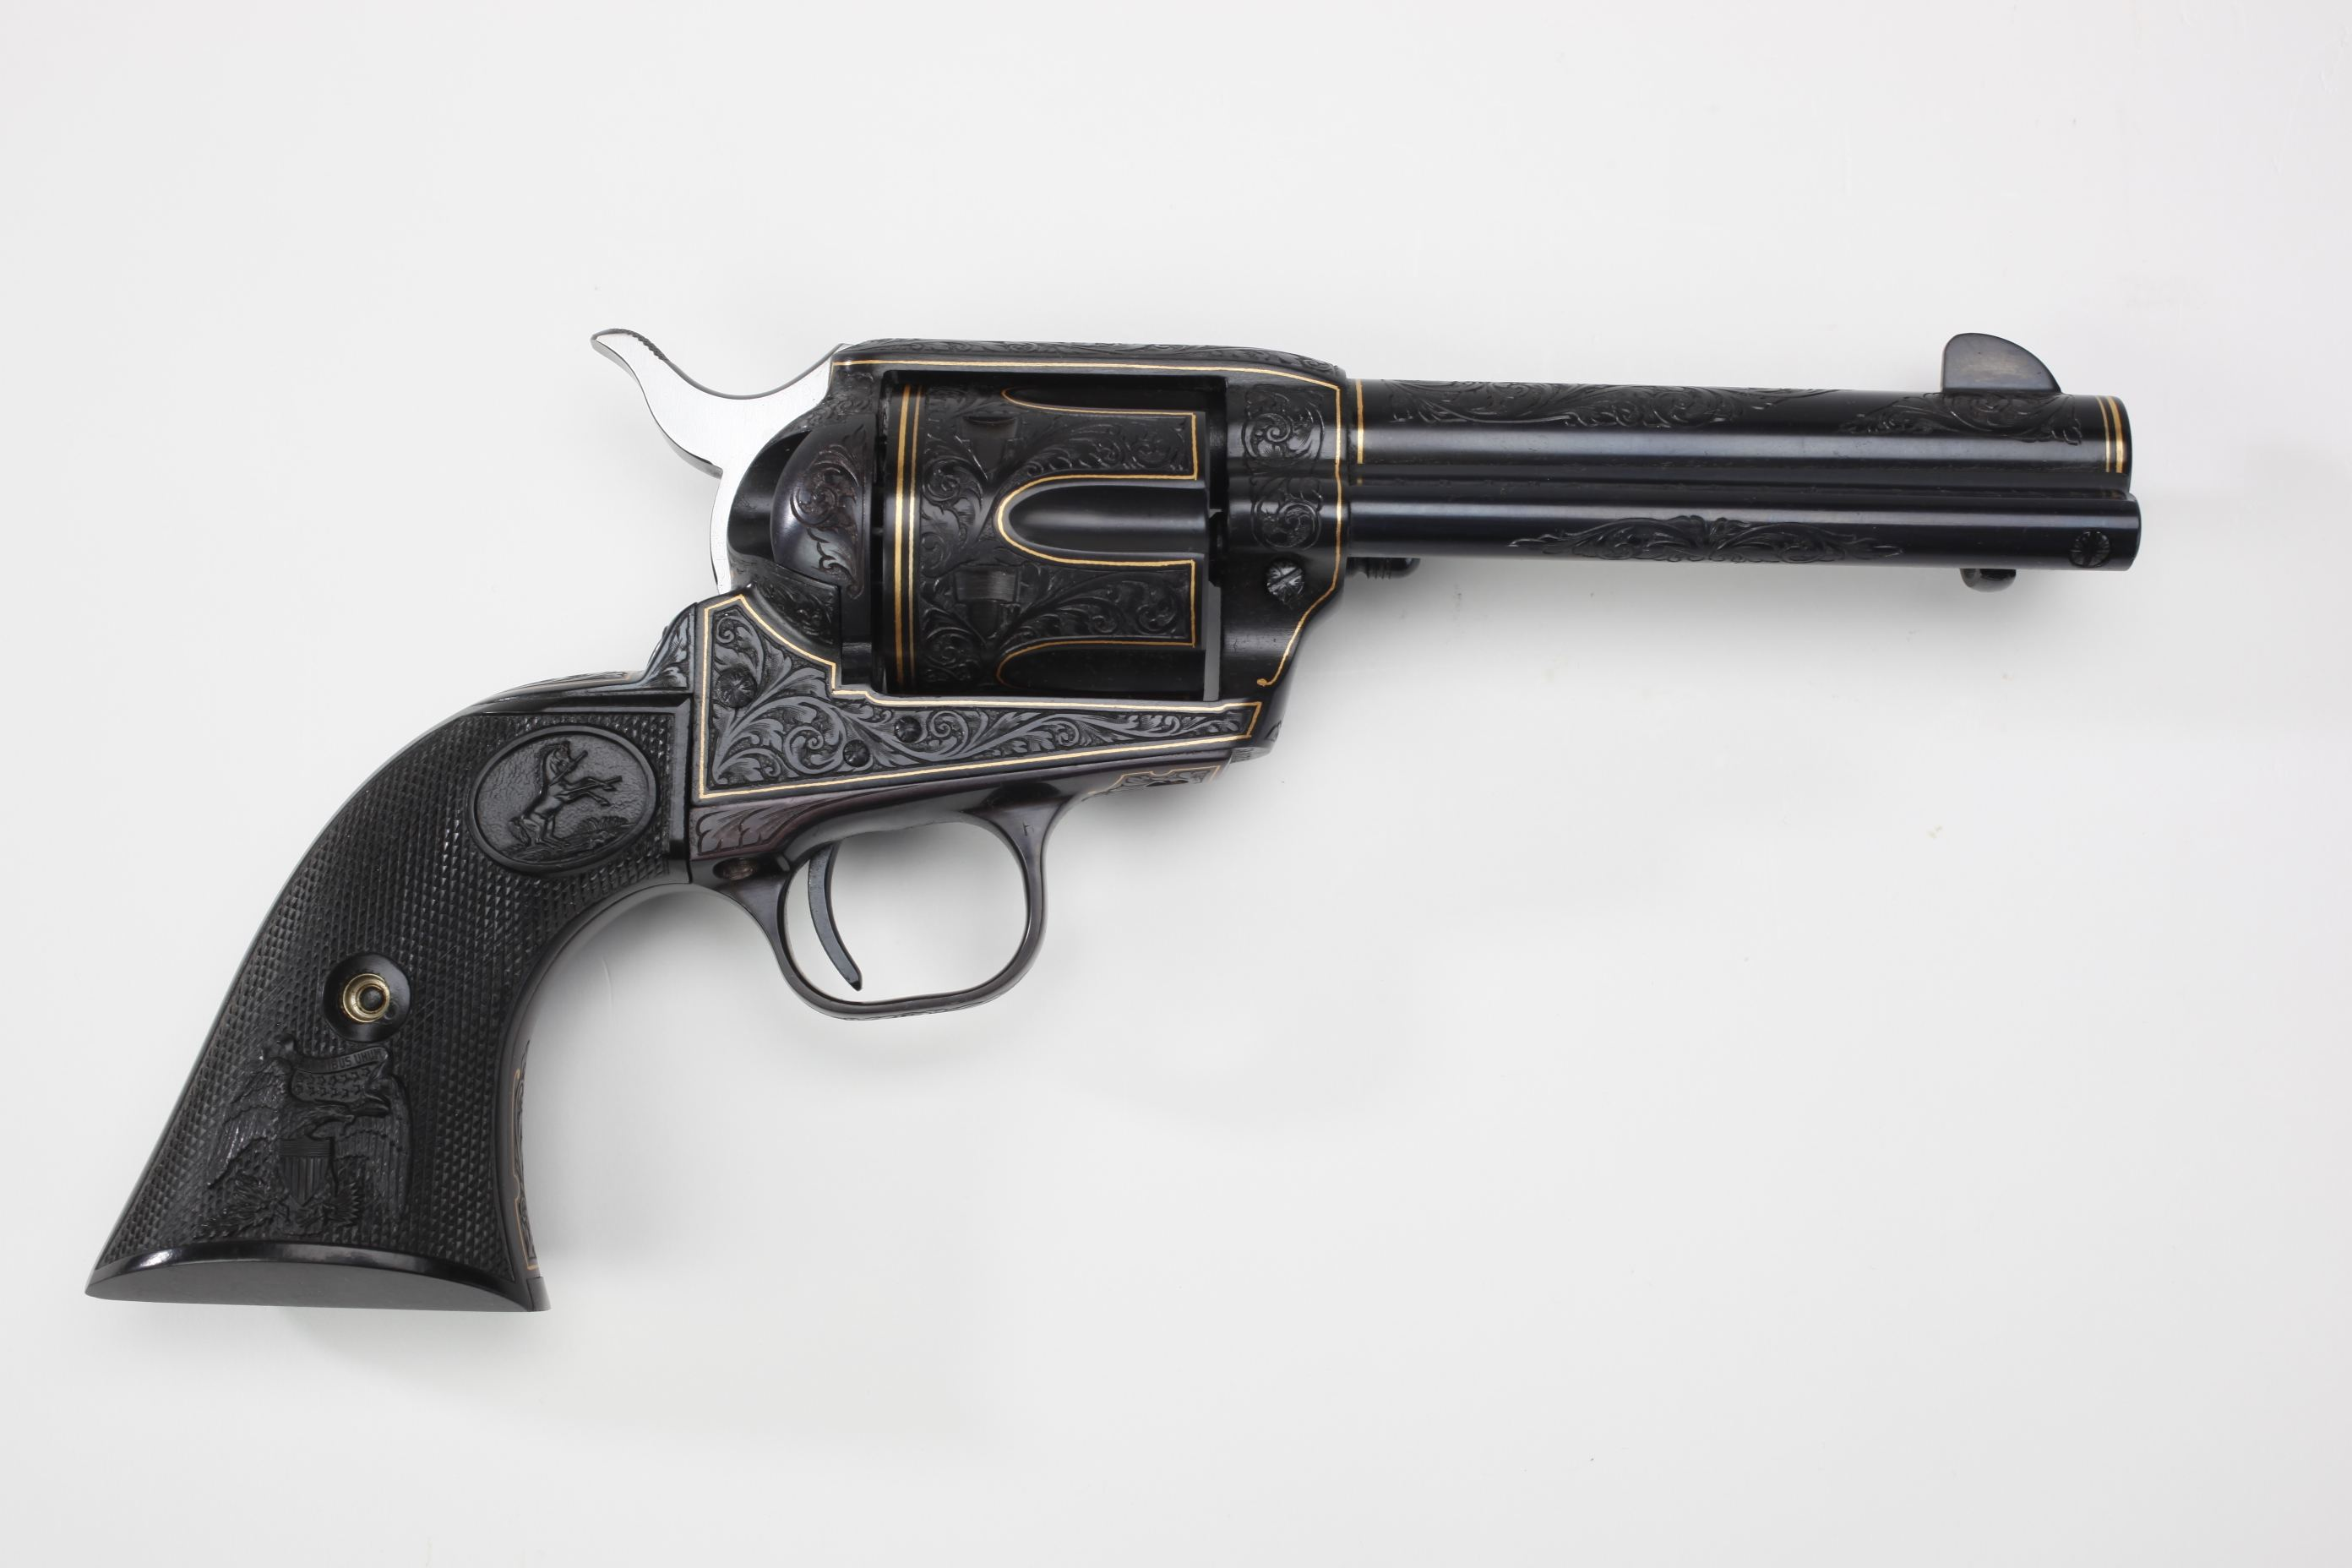 Colt Single Action Army Revolver w/ rubber grip panels